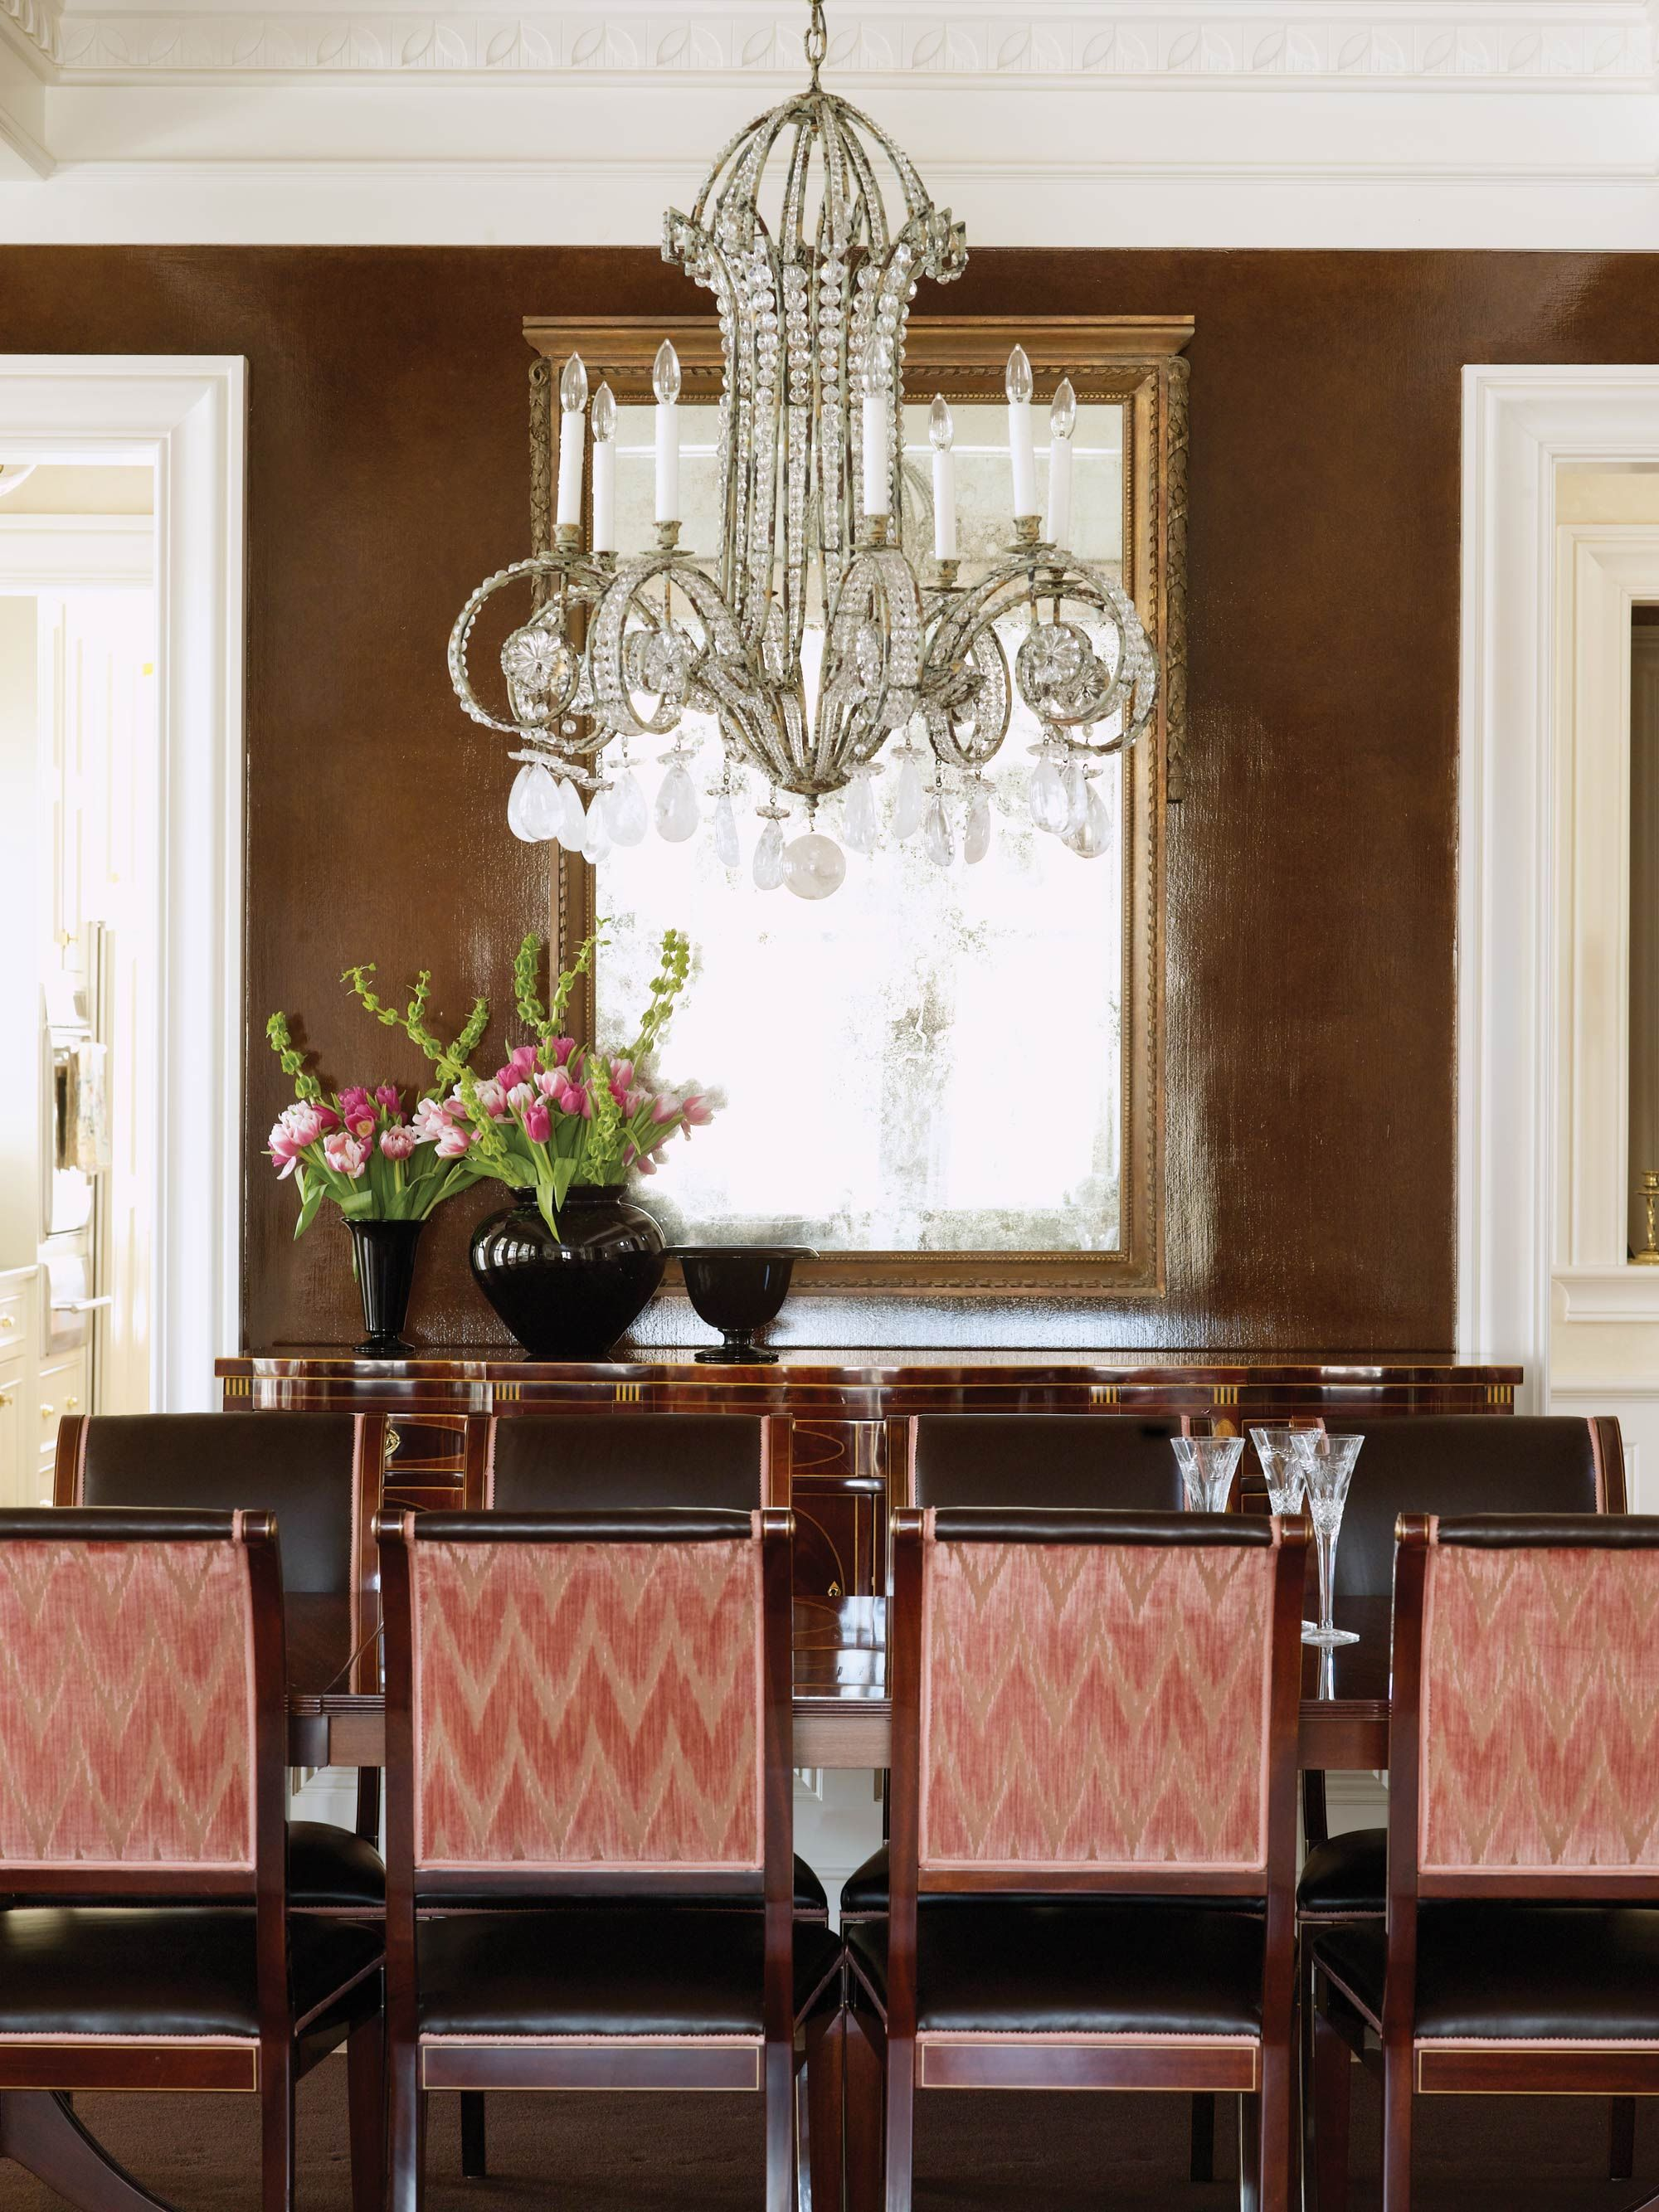 A light palette is used throughout the house except in the dining